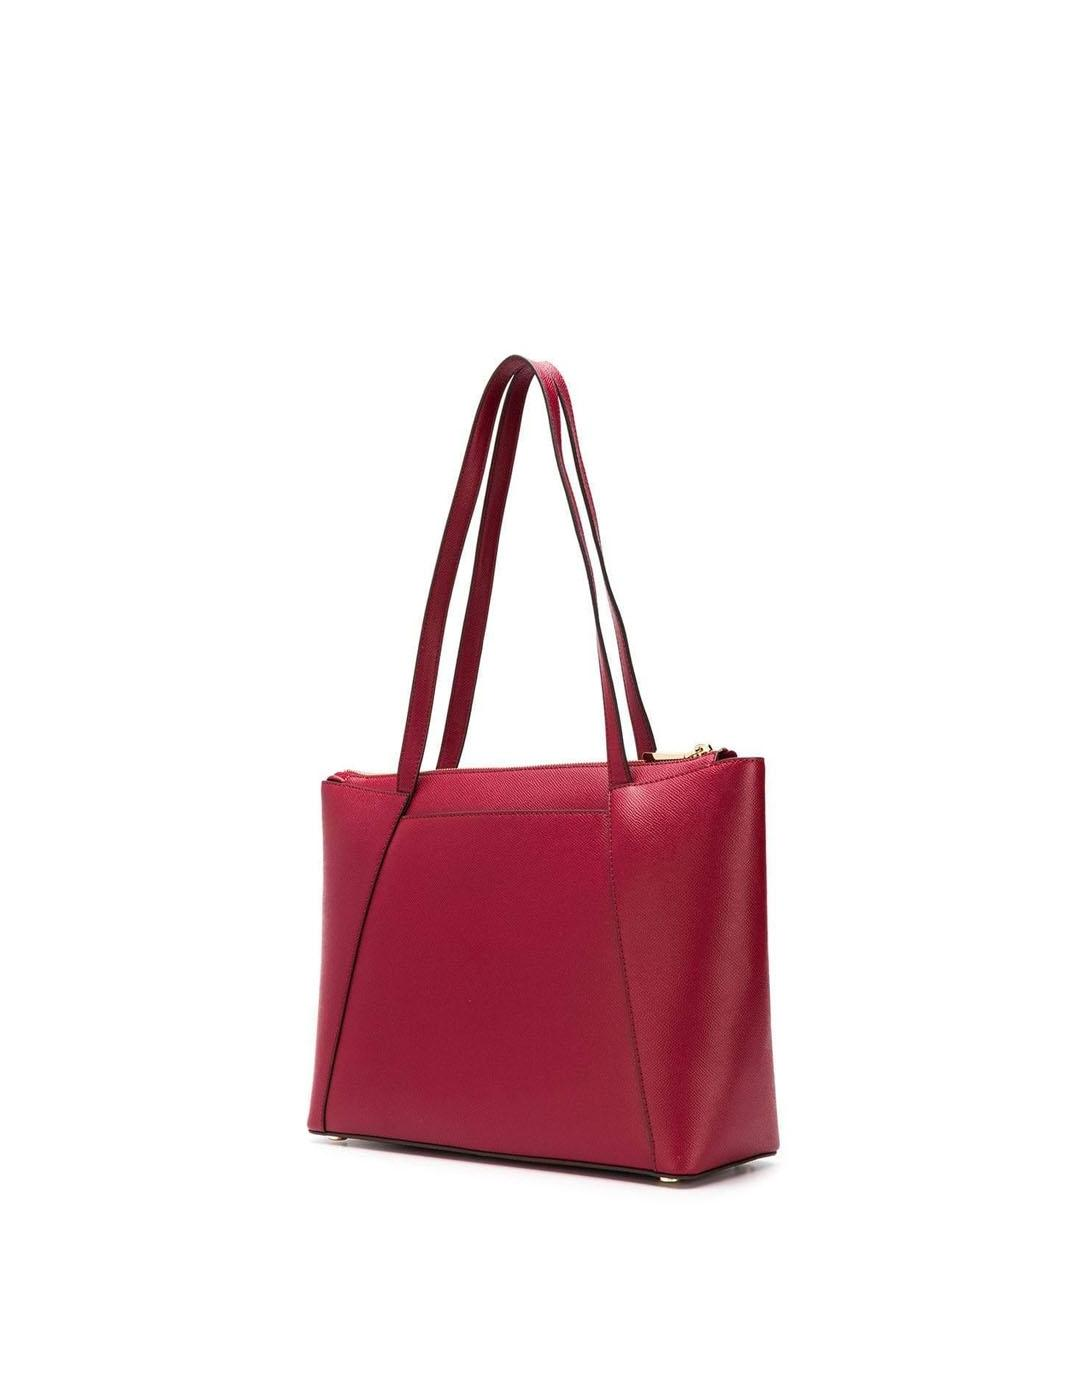 Bolso Michael Kors granate Maddie medium tote